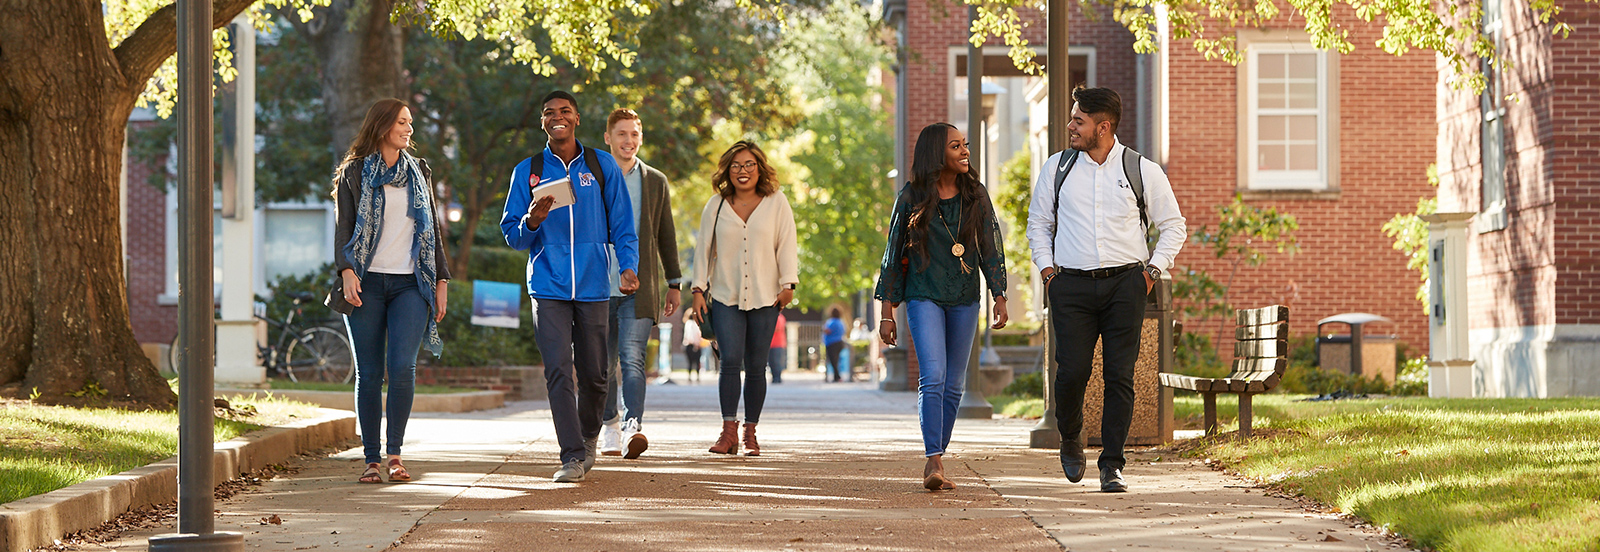 students traversing campus